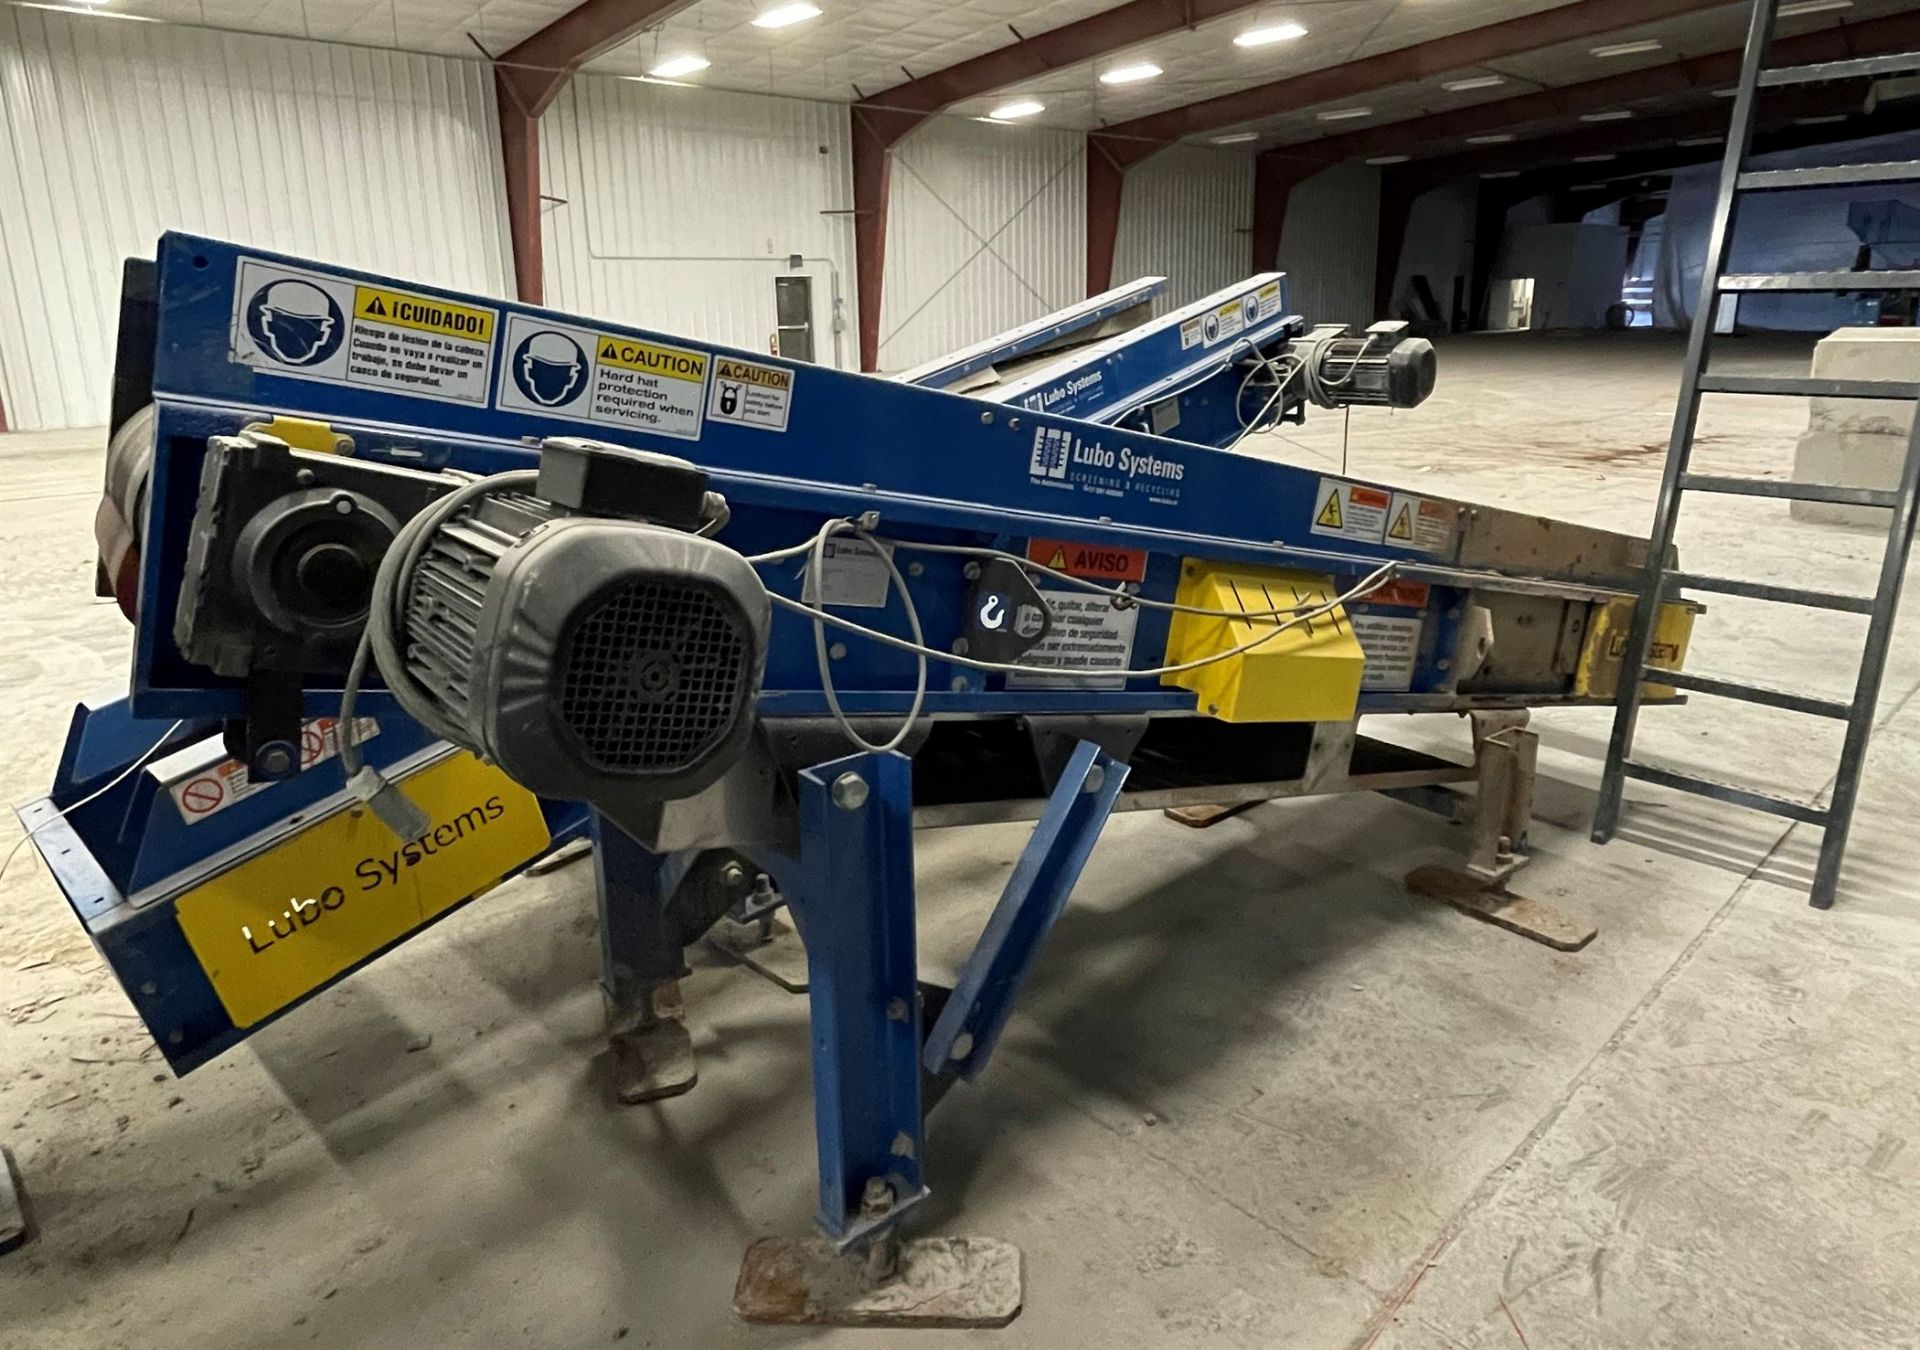 2015 LUBO SYSTEMS TBL 600x3500 Inclined Belt Conveyor, s/n 800108-0280, 600mm x 3500mm, SEW 3.7 kW - Image 3 of 5